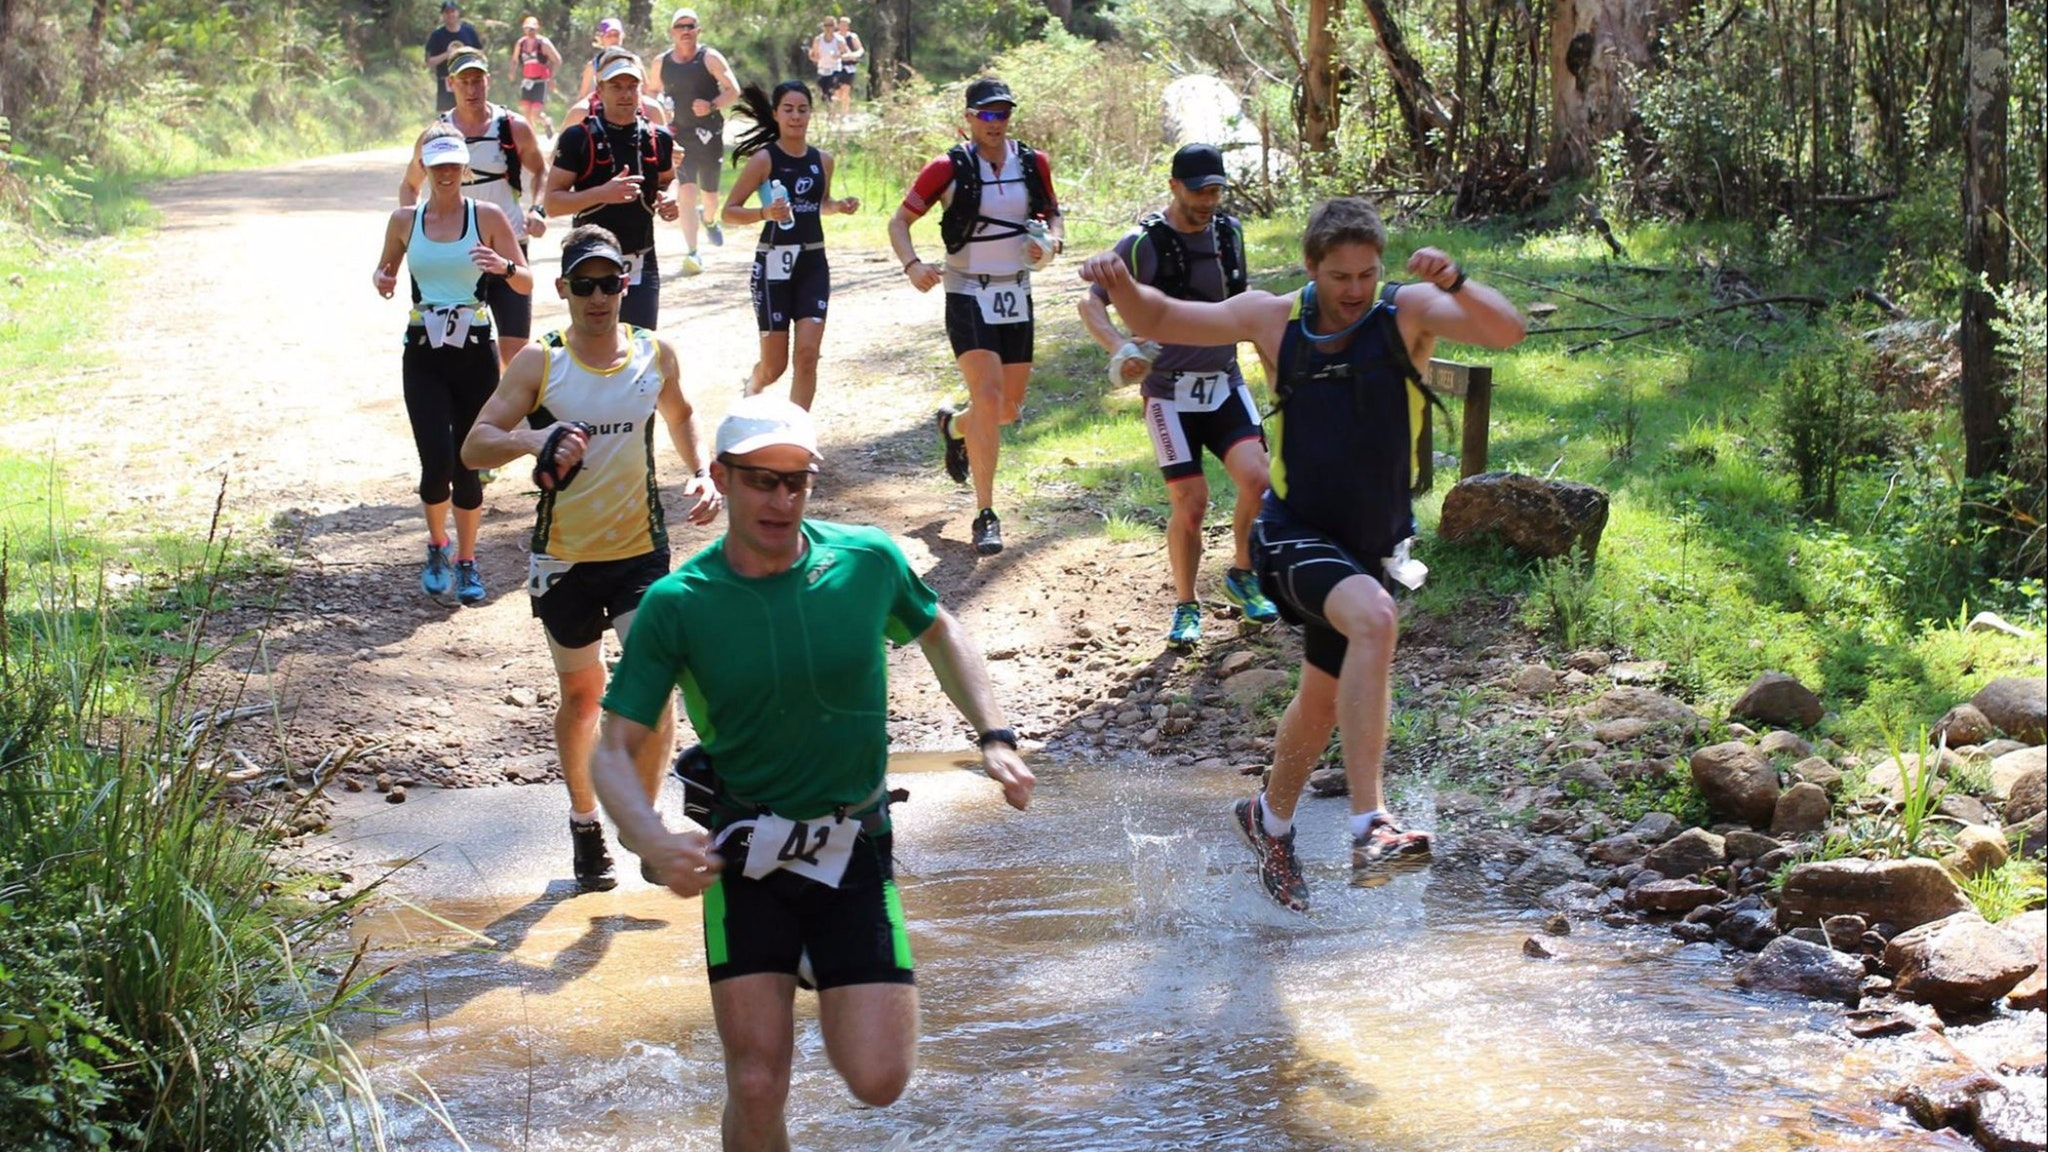 King Valley Fun Run